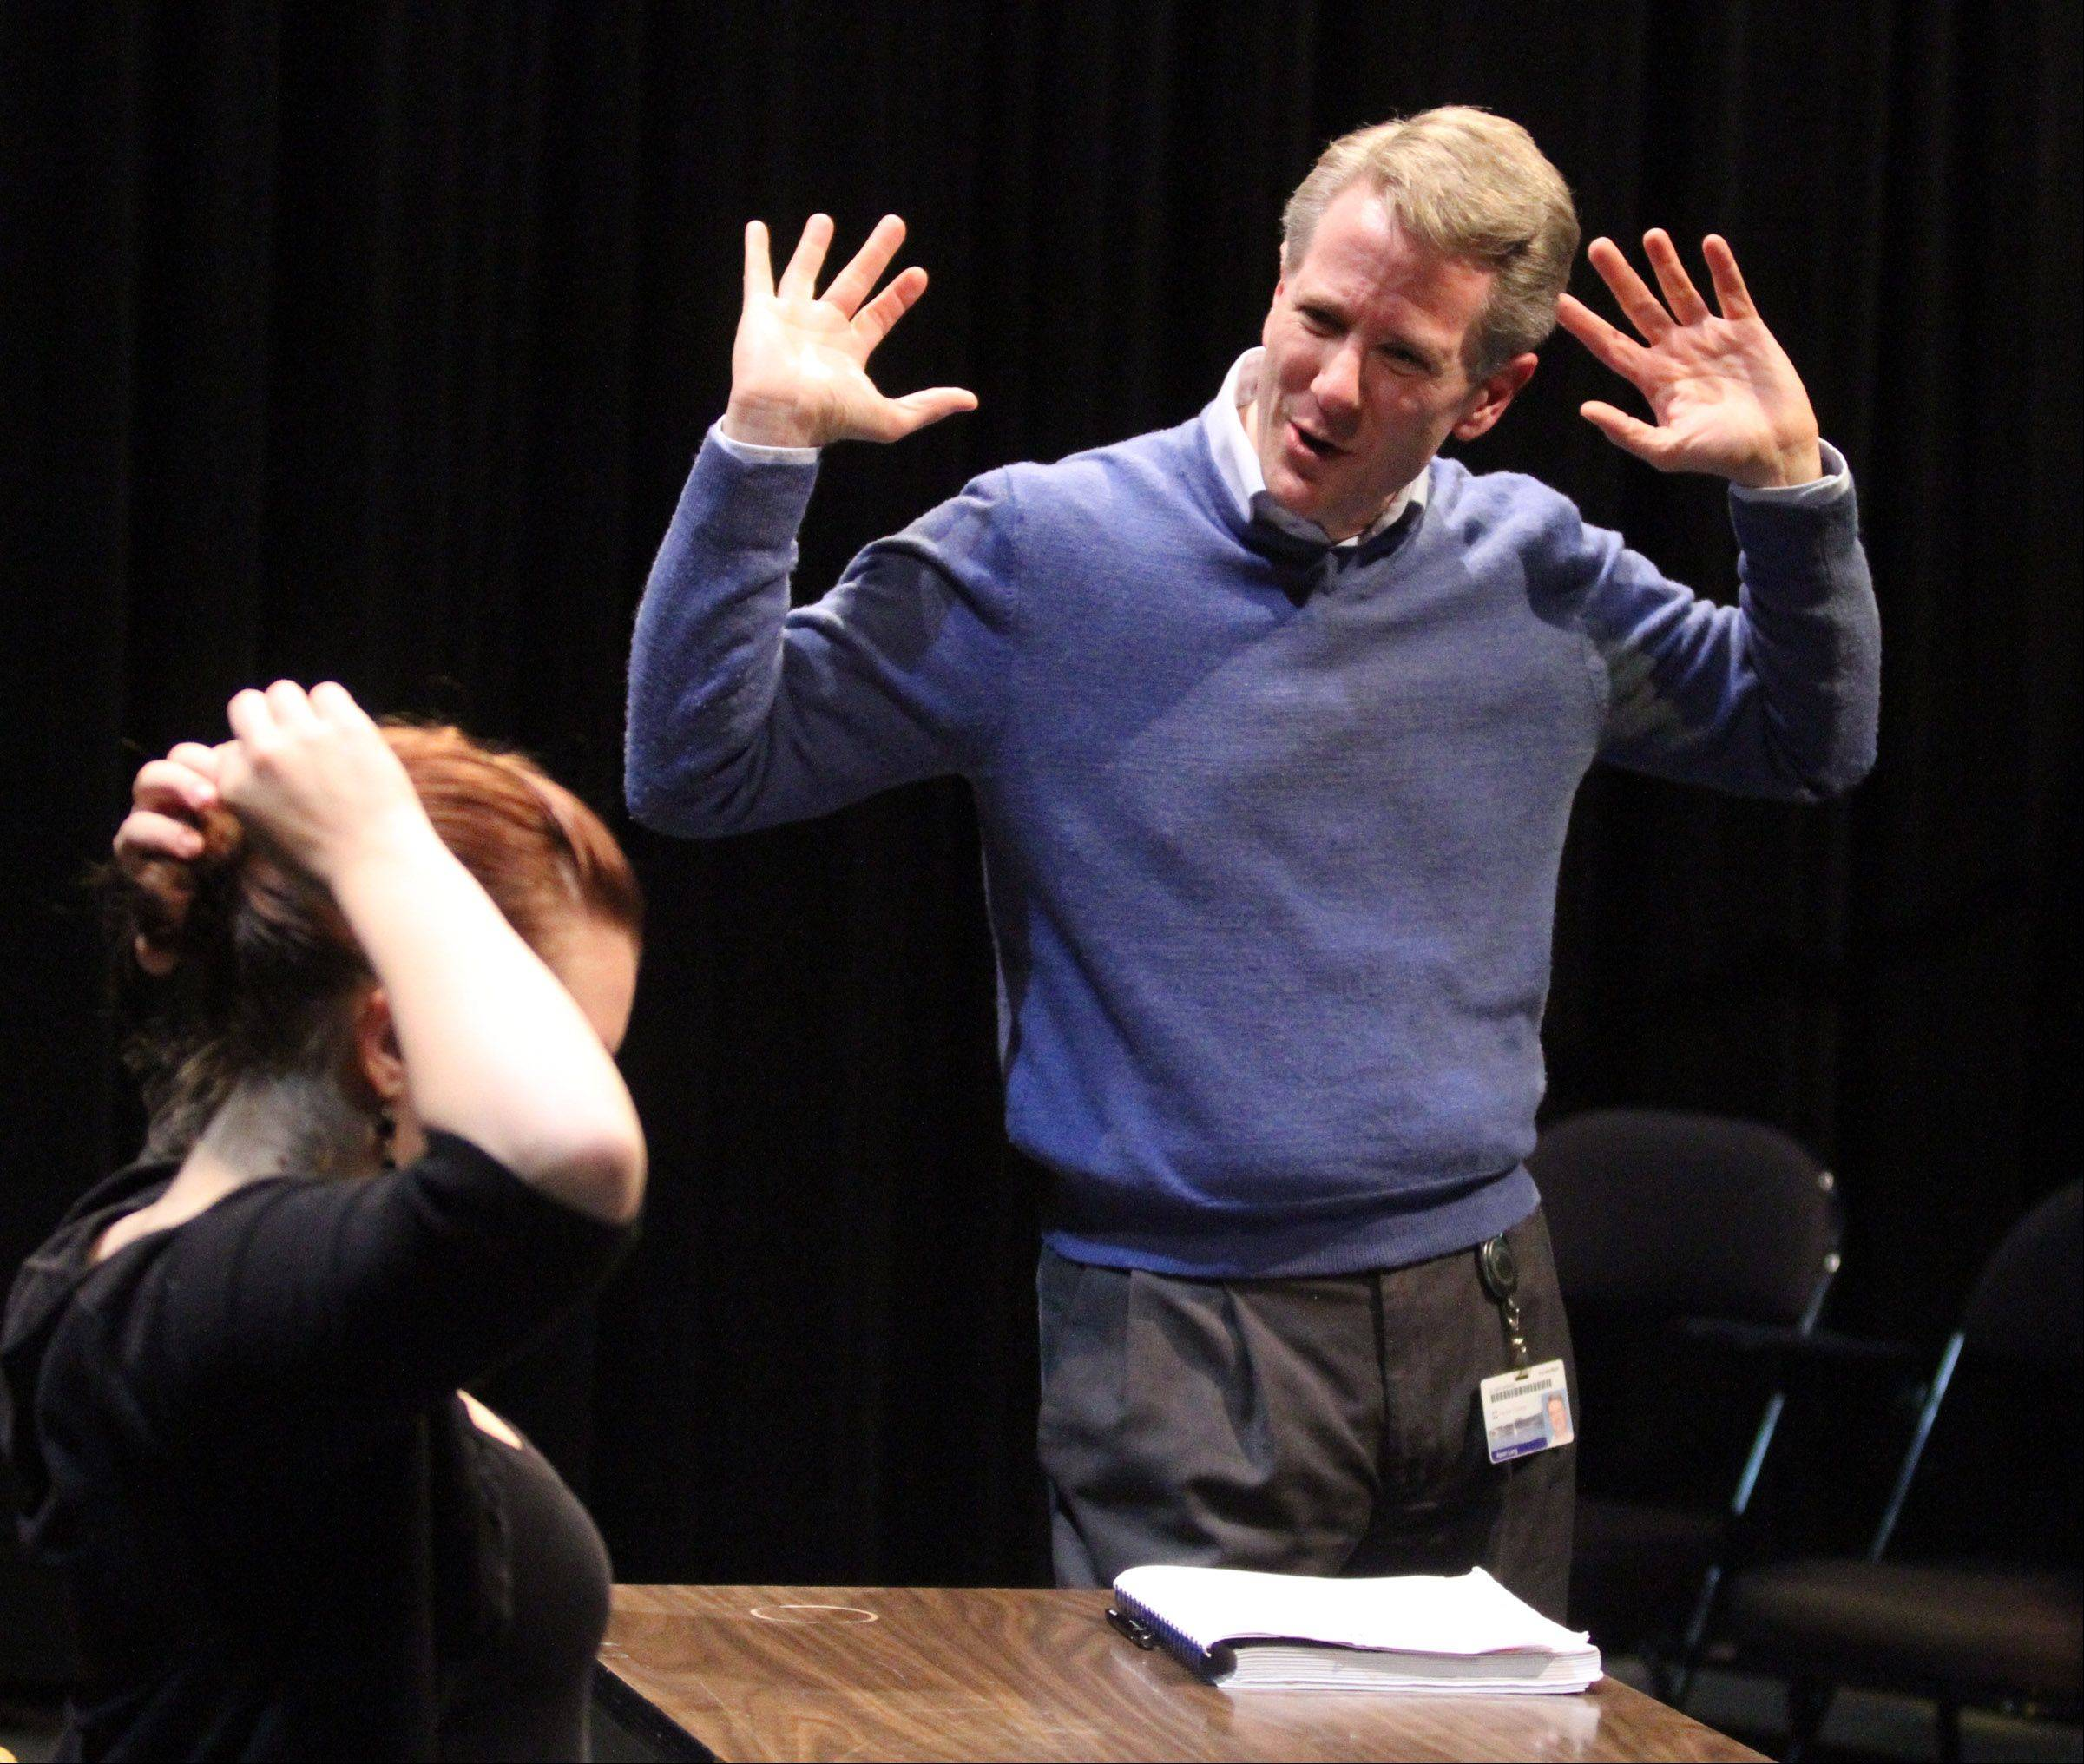 Kevin Long directs Kathy Harth of Naperville playing the role of Lucille Frank during a rehearsal in the Black Box Theatre.